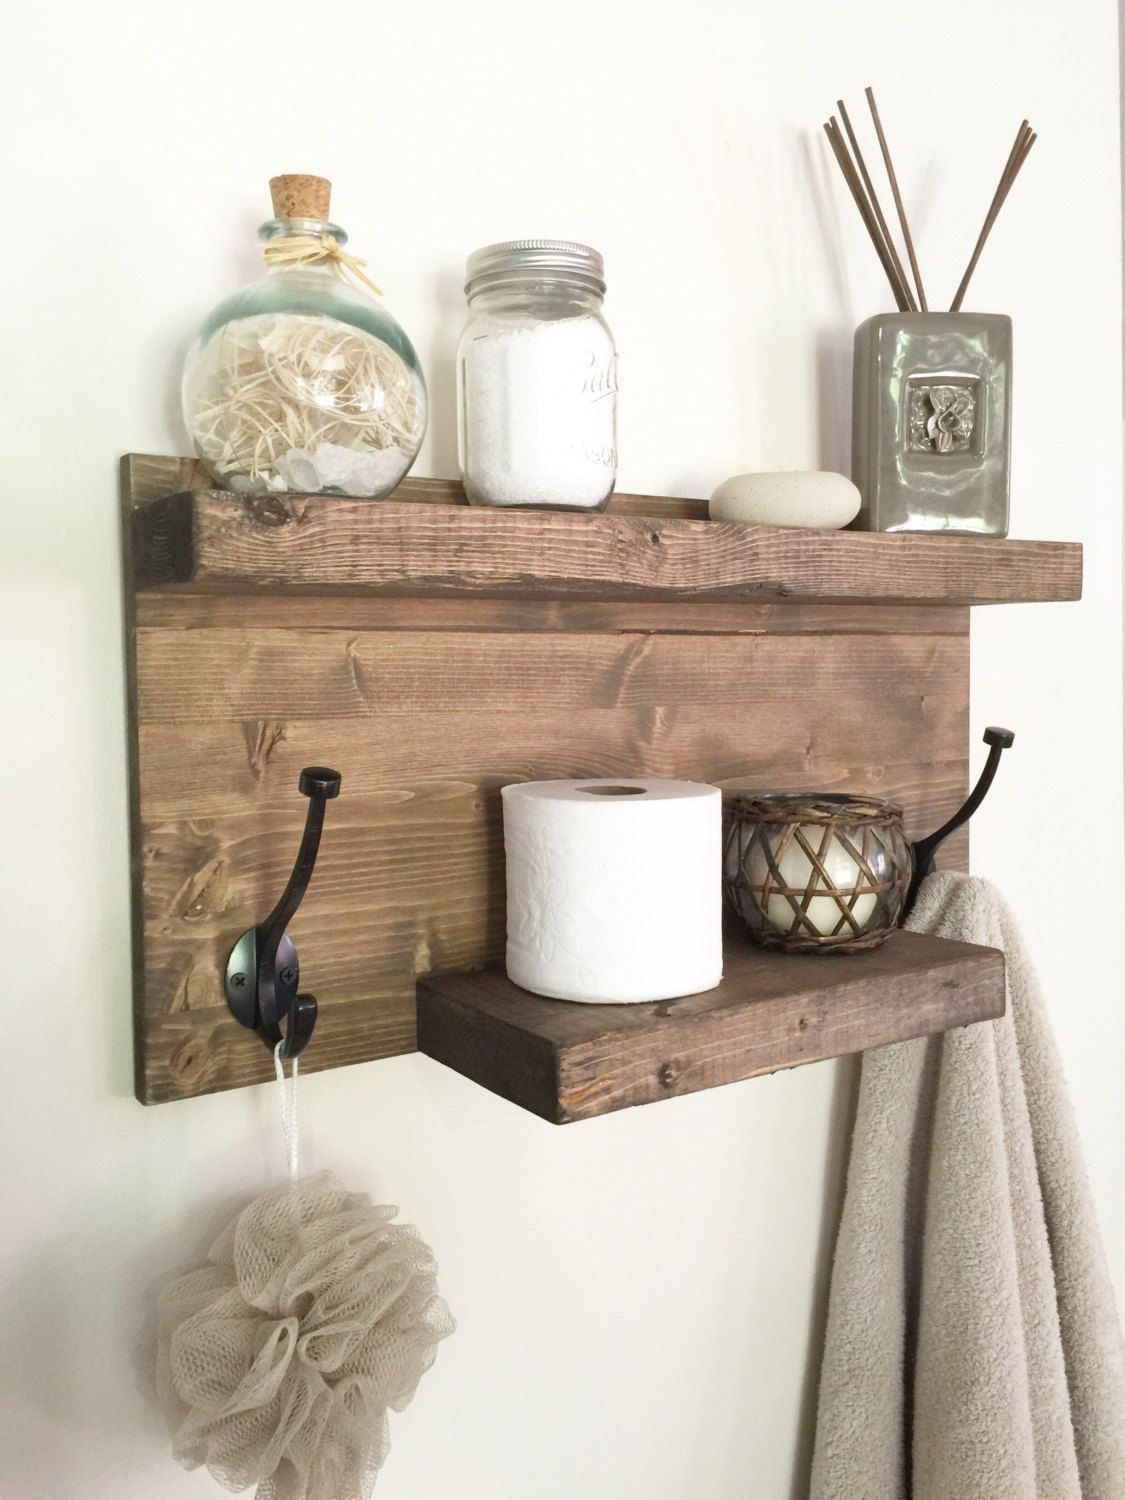 Farmhouse Hand Towel Holder Rustic Bathroom Shelf Rustic Wood Shelf Towel Rack